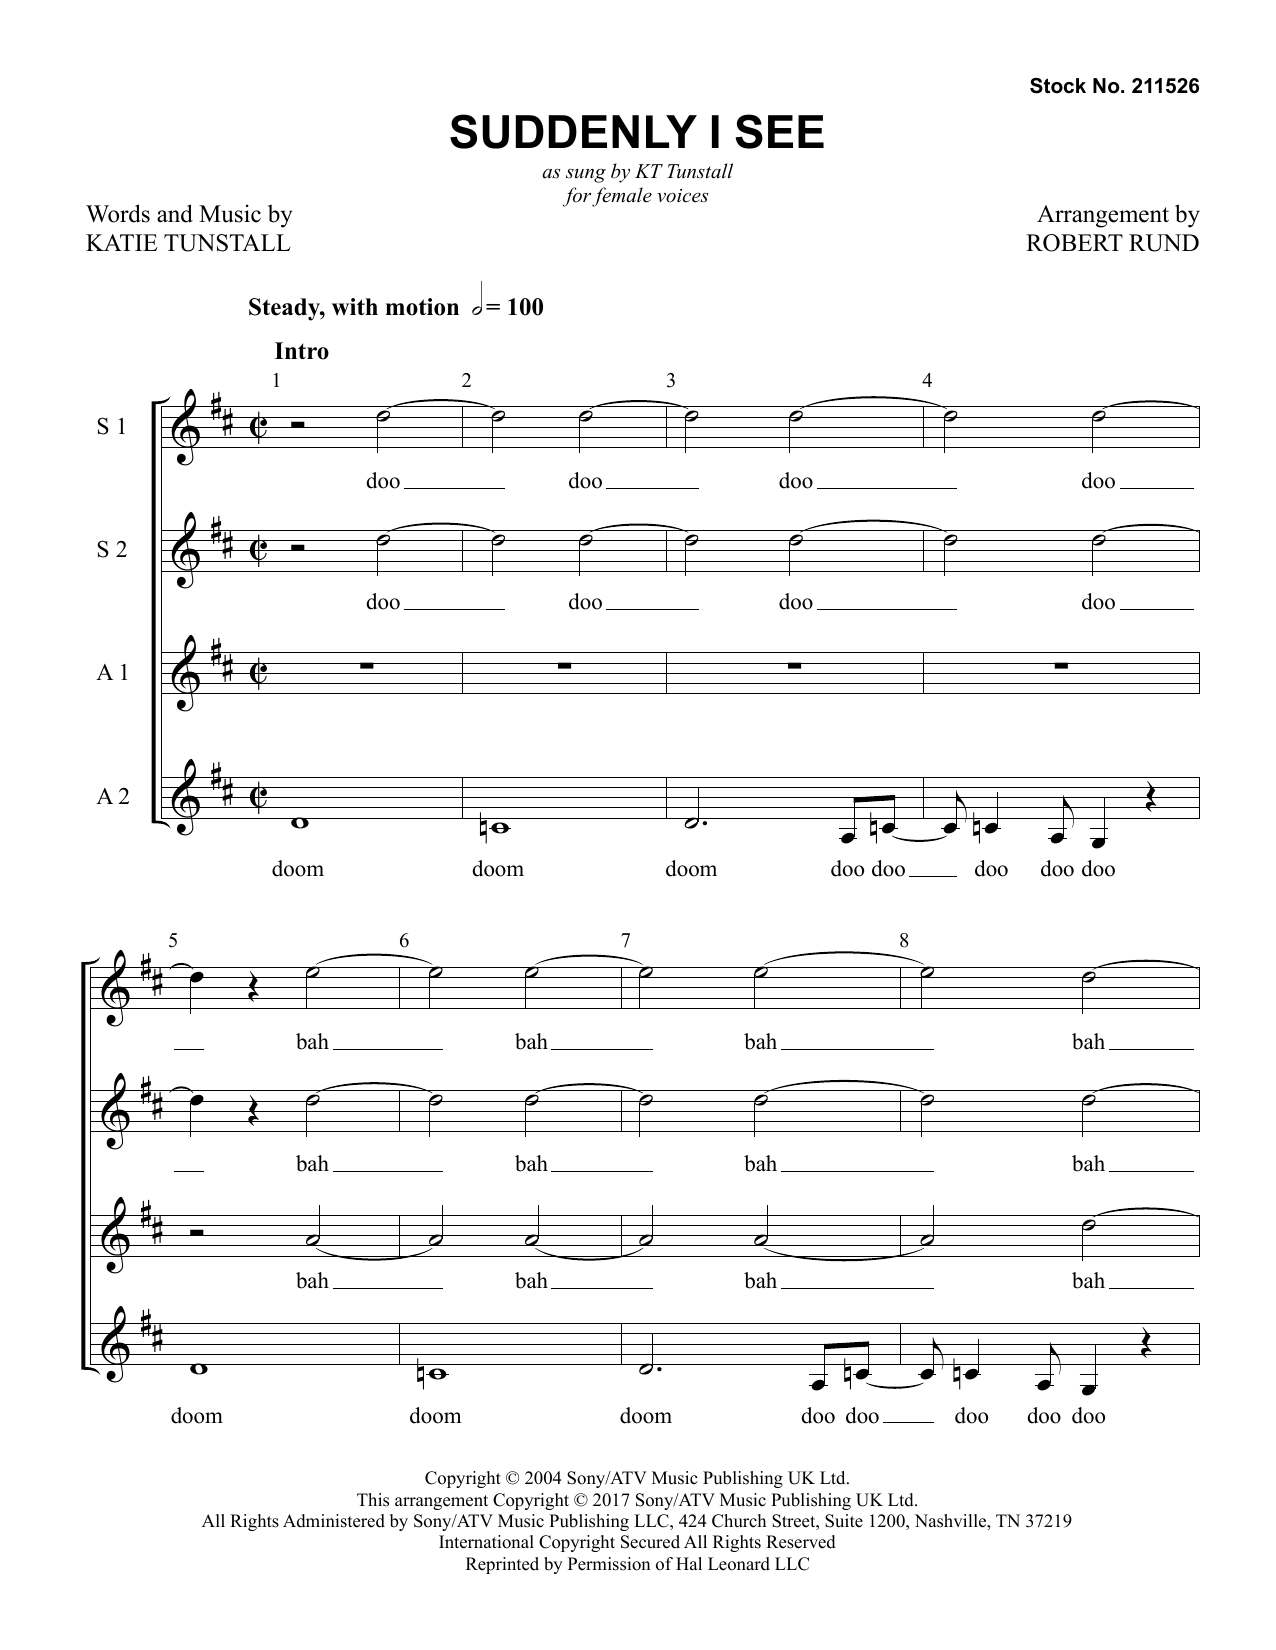 KT Tunstall Suddenly I See (arr. Robert Rund) sheet music preview music notes and score for SSAA Choir including 16 page(s)